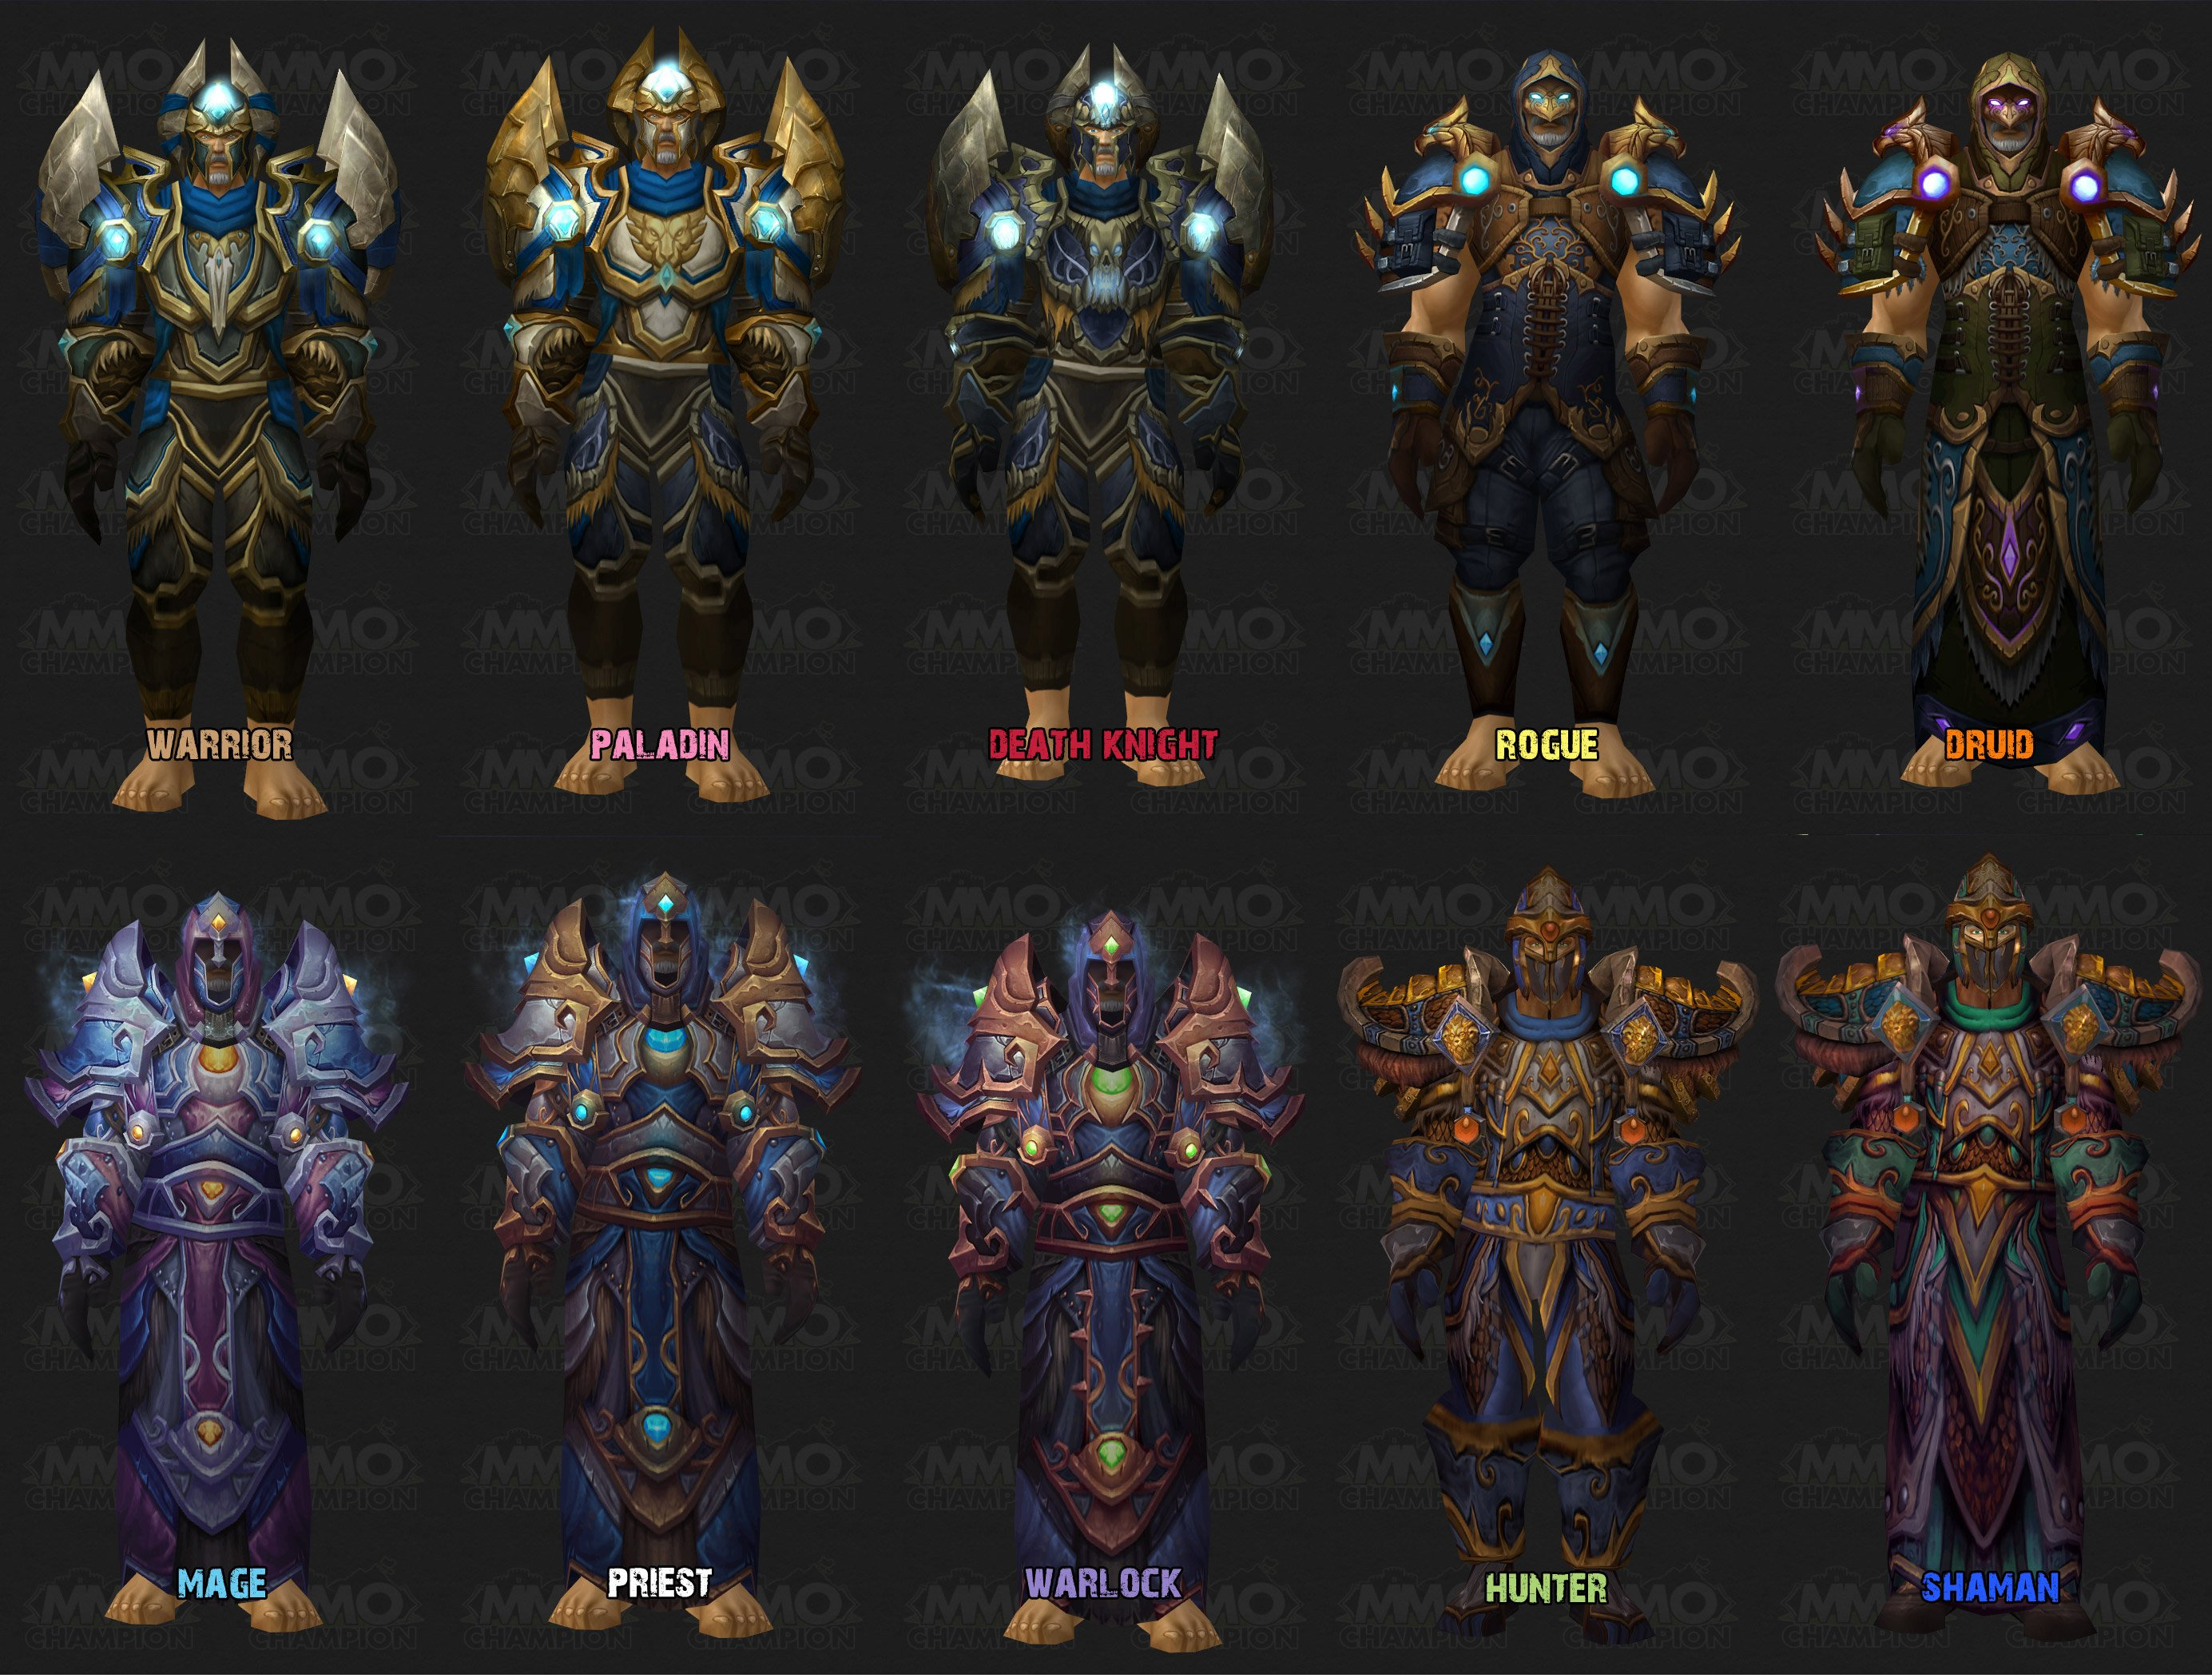 MMO-Ch&ion Previews Full Tier 9 Armor Set ModelsJul 17th 2009 at 1003 AM by Togikagi  sc 1 st  WoW Allakhazam & MMO-Champion Previews Full Tier 9 Armor Set Models :: World of ...